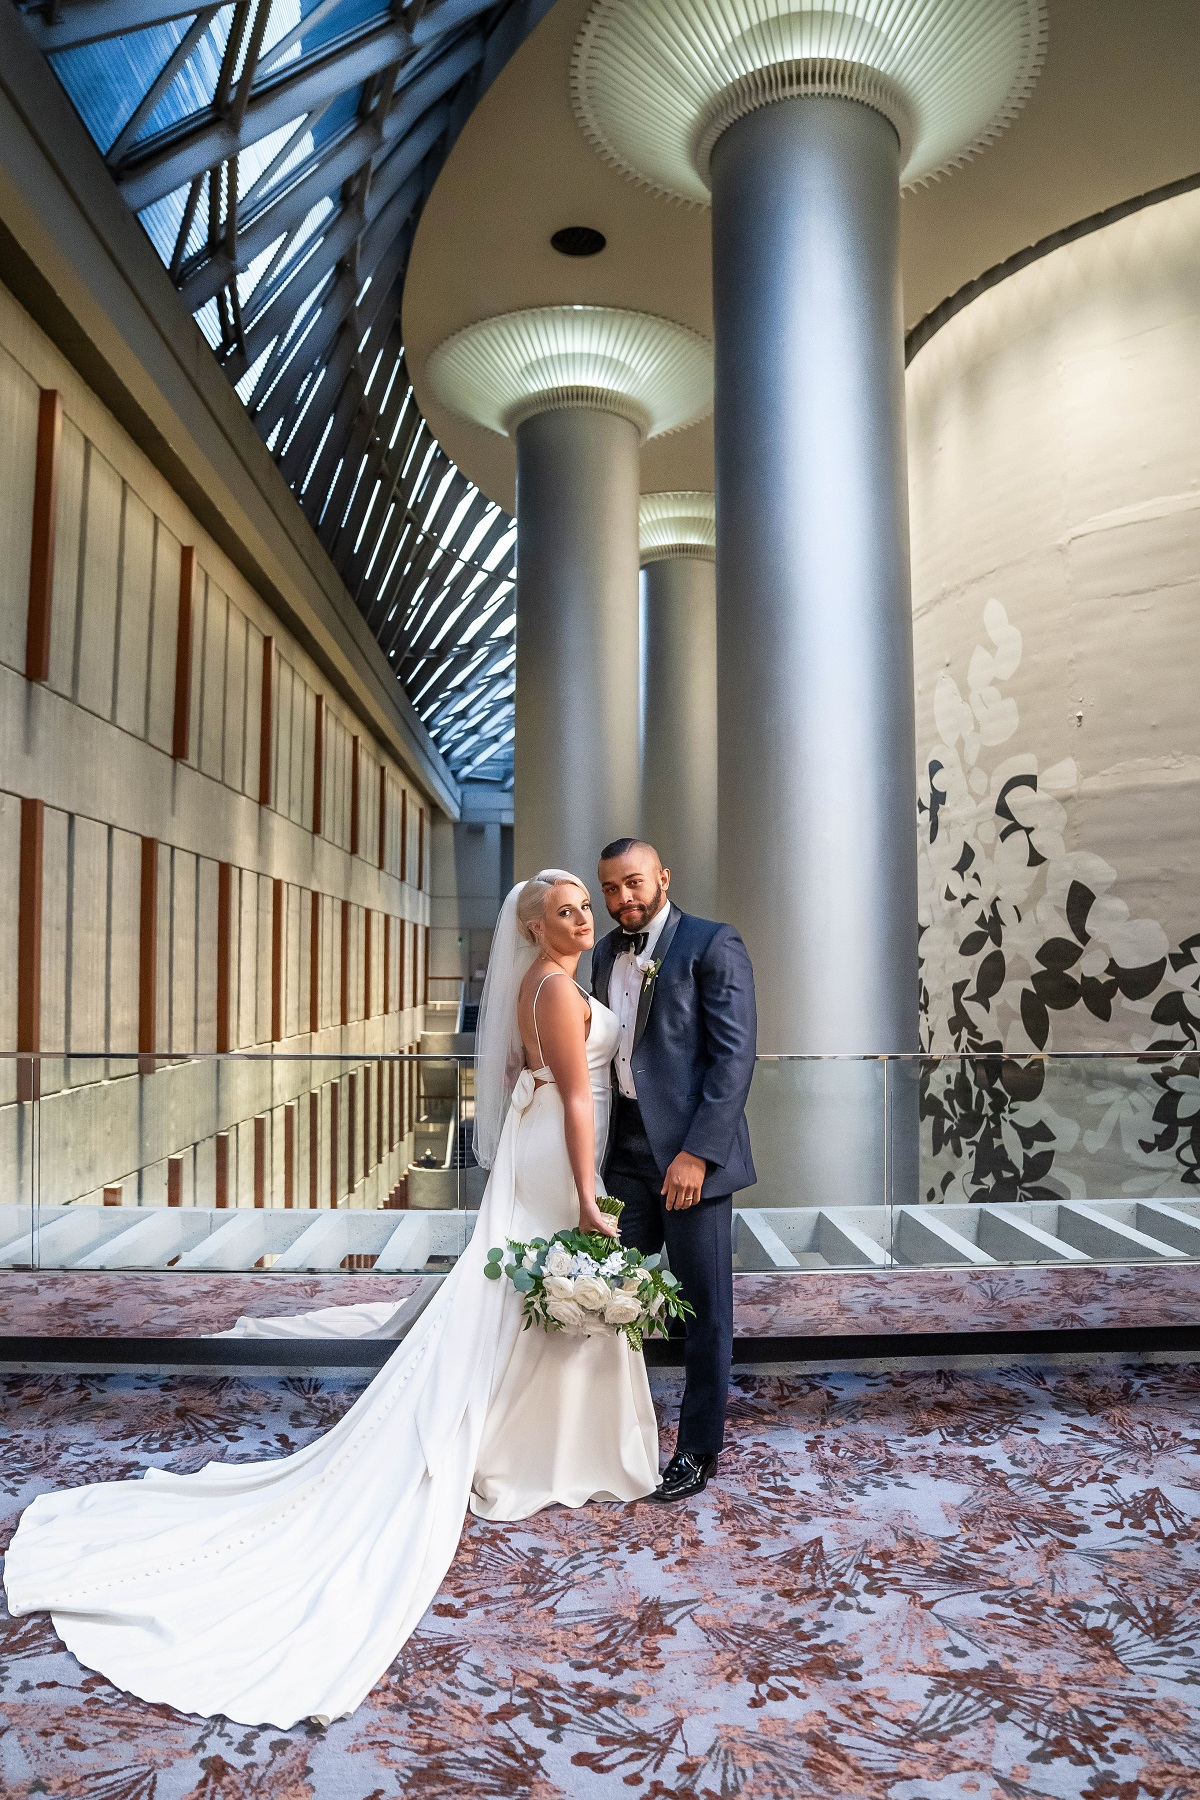 Clara Fergus and Ryan Oubre on their wedding day on 'Married at First Sight'